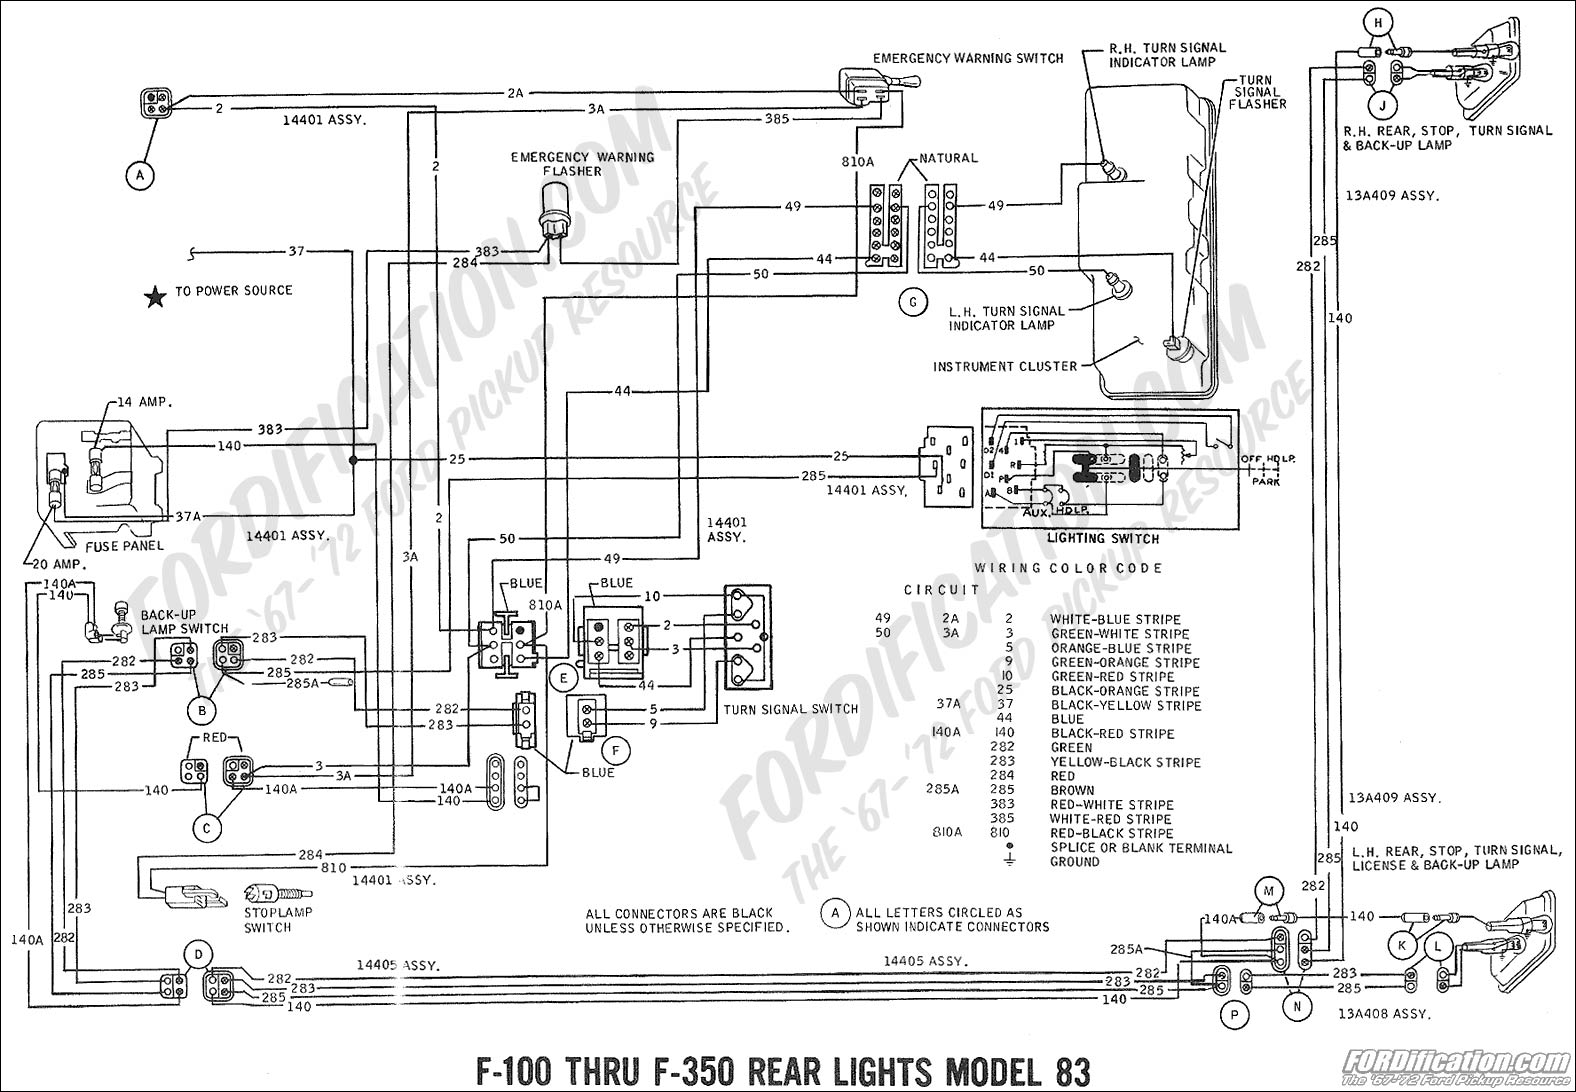 ford truck technical drawings and schematics section h wiring rh fordification com 2003 Ford F-250 Wiring Diagram 2000 Ford F-250 Wiring Diagram